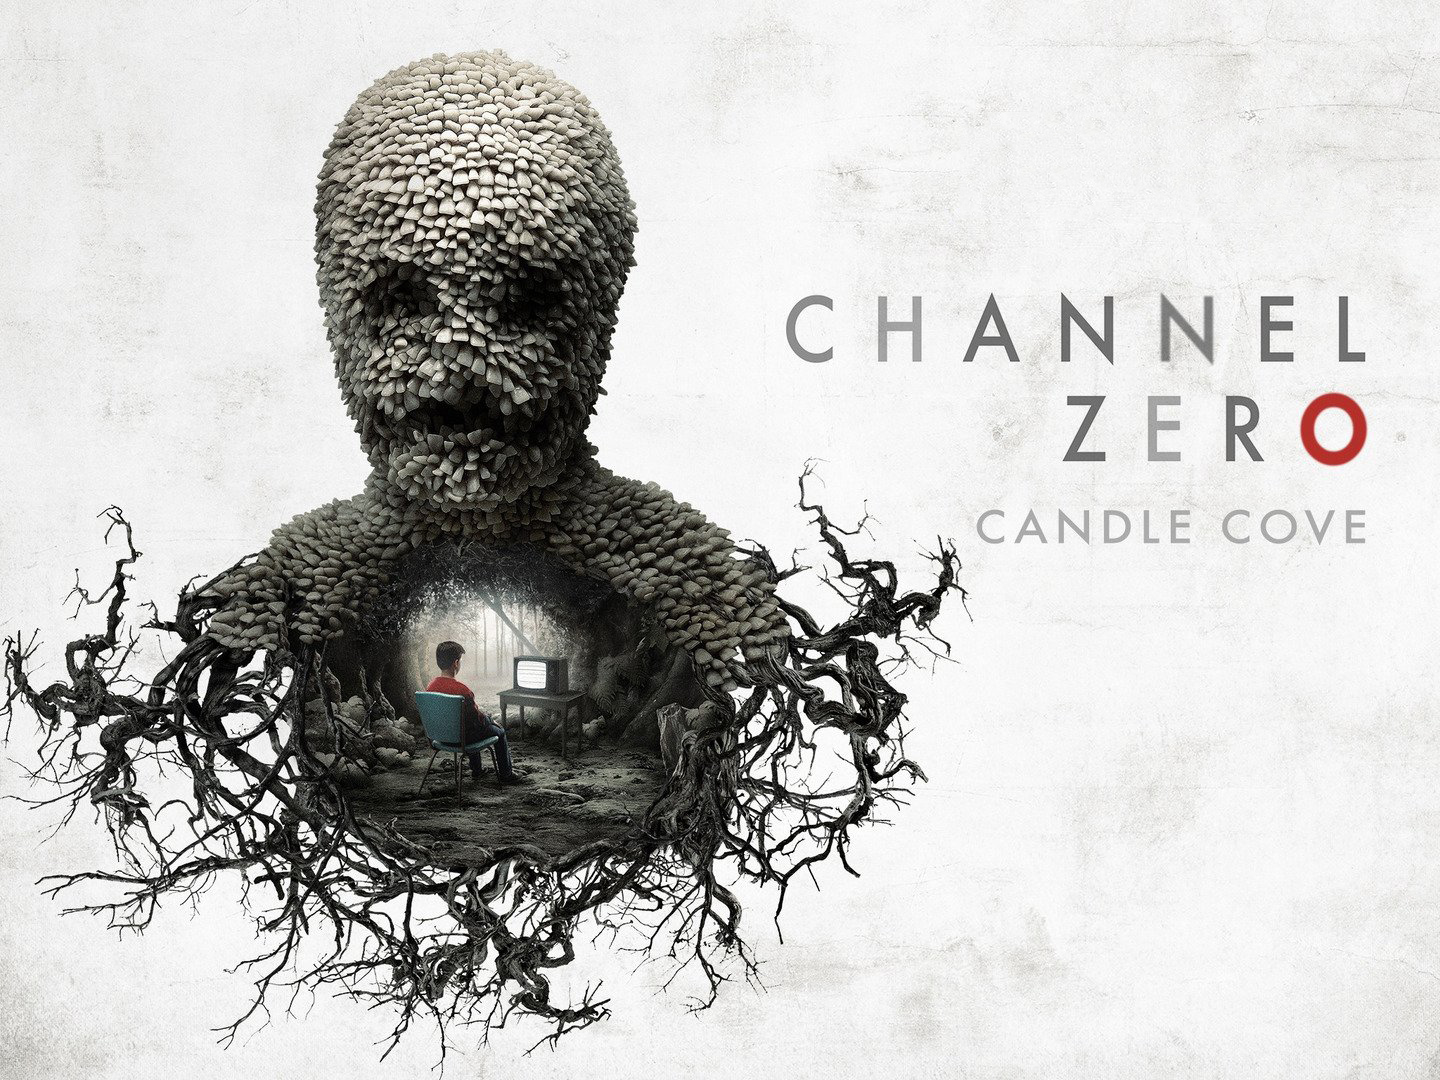 1526438063673-channel-zero—candle-cove_4x3_1440x1080_showtile